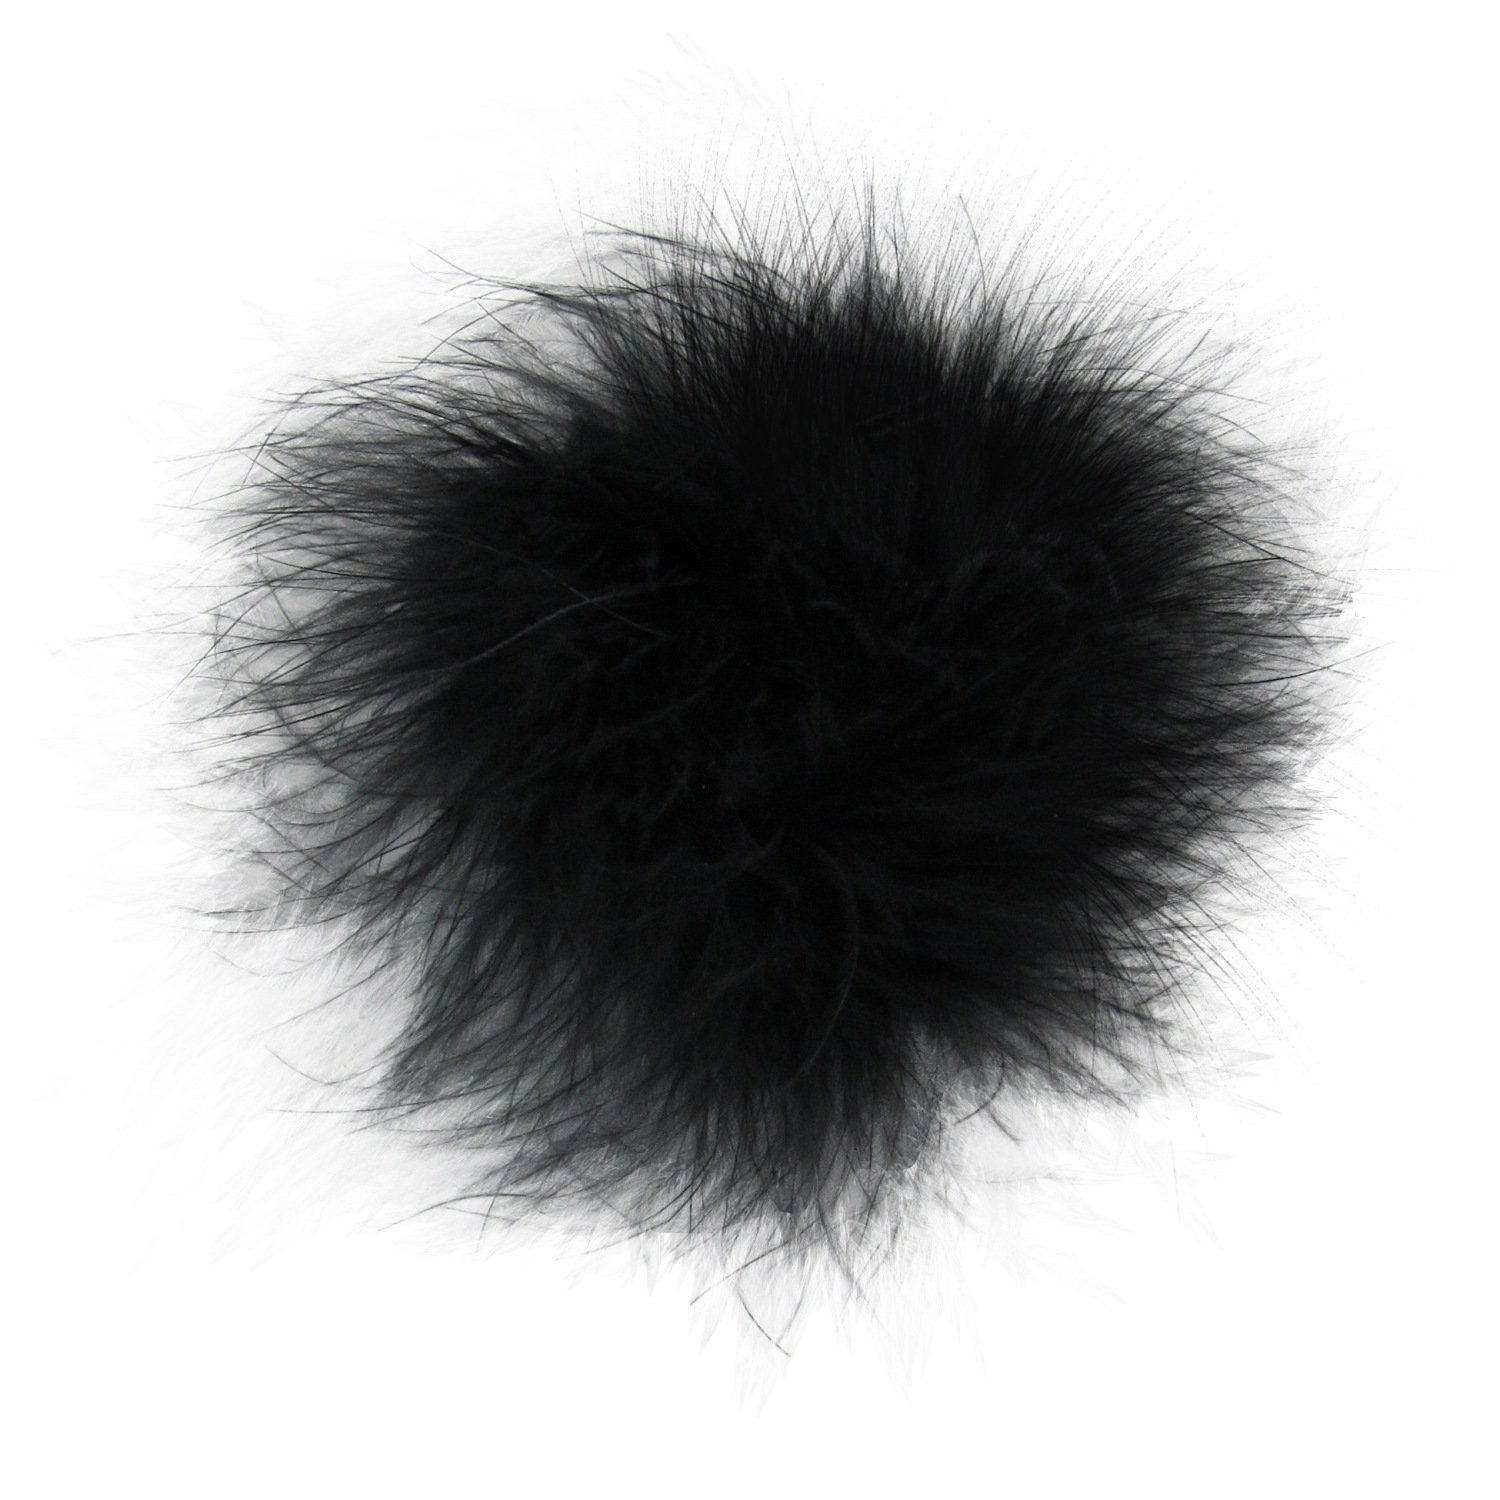 Marabou Feather Puff Princess Dress-Up Hair Bow Clip